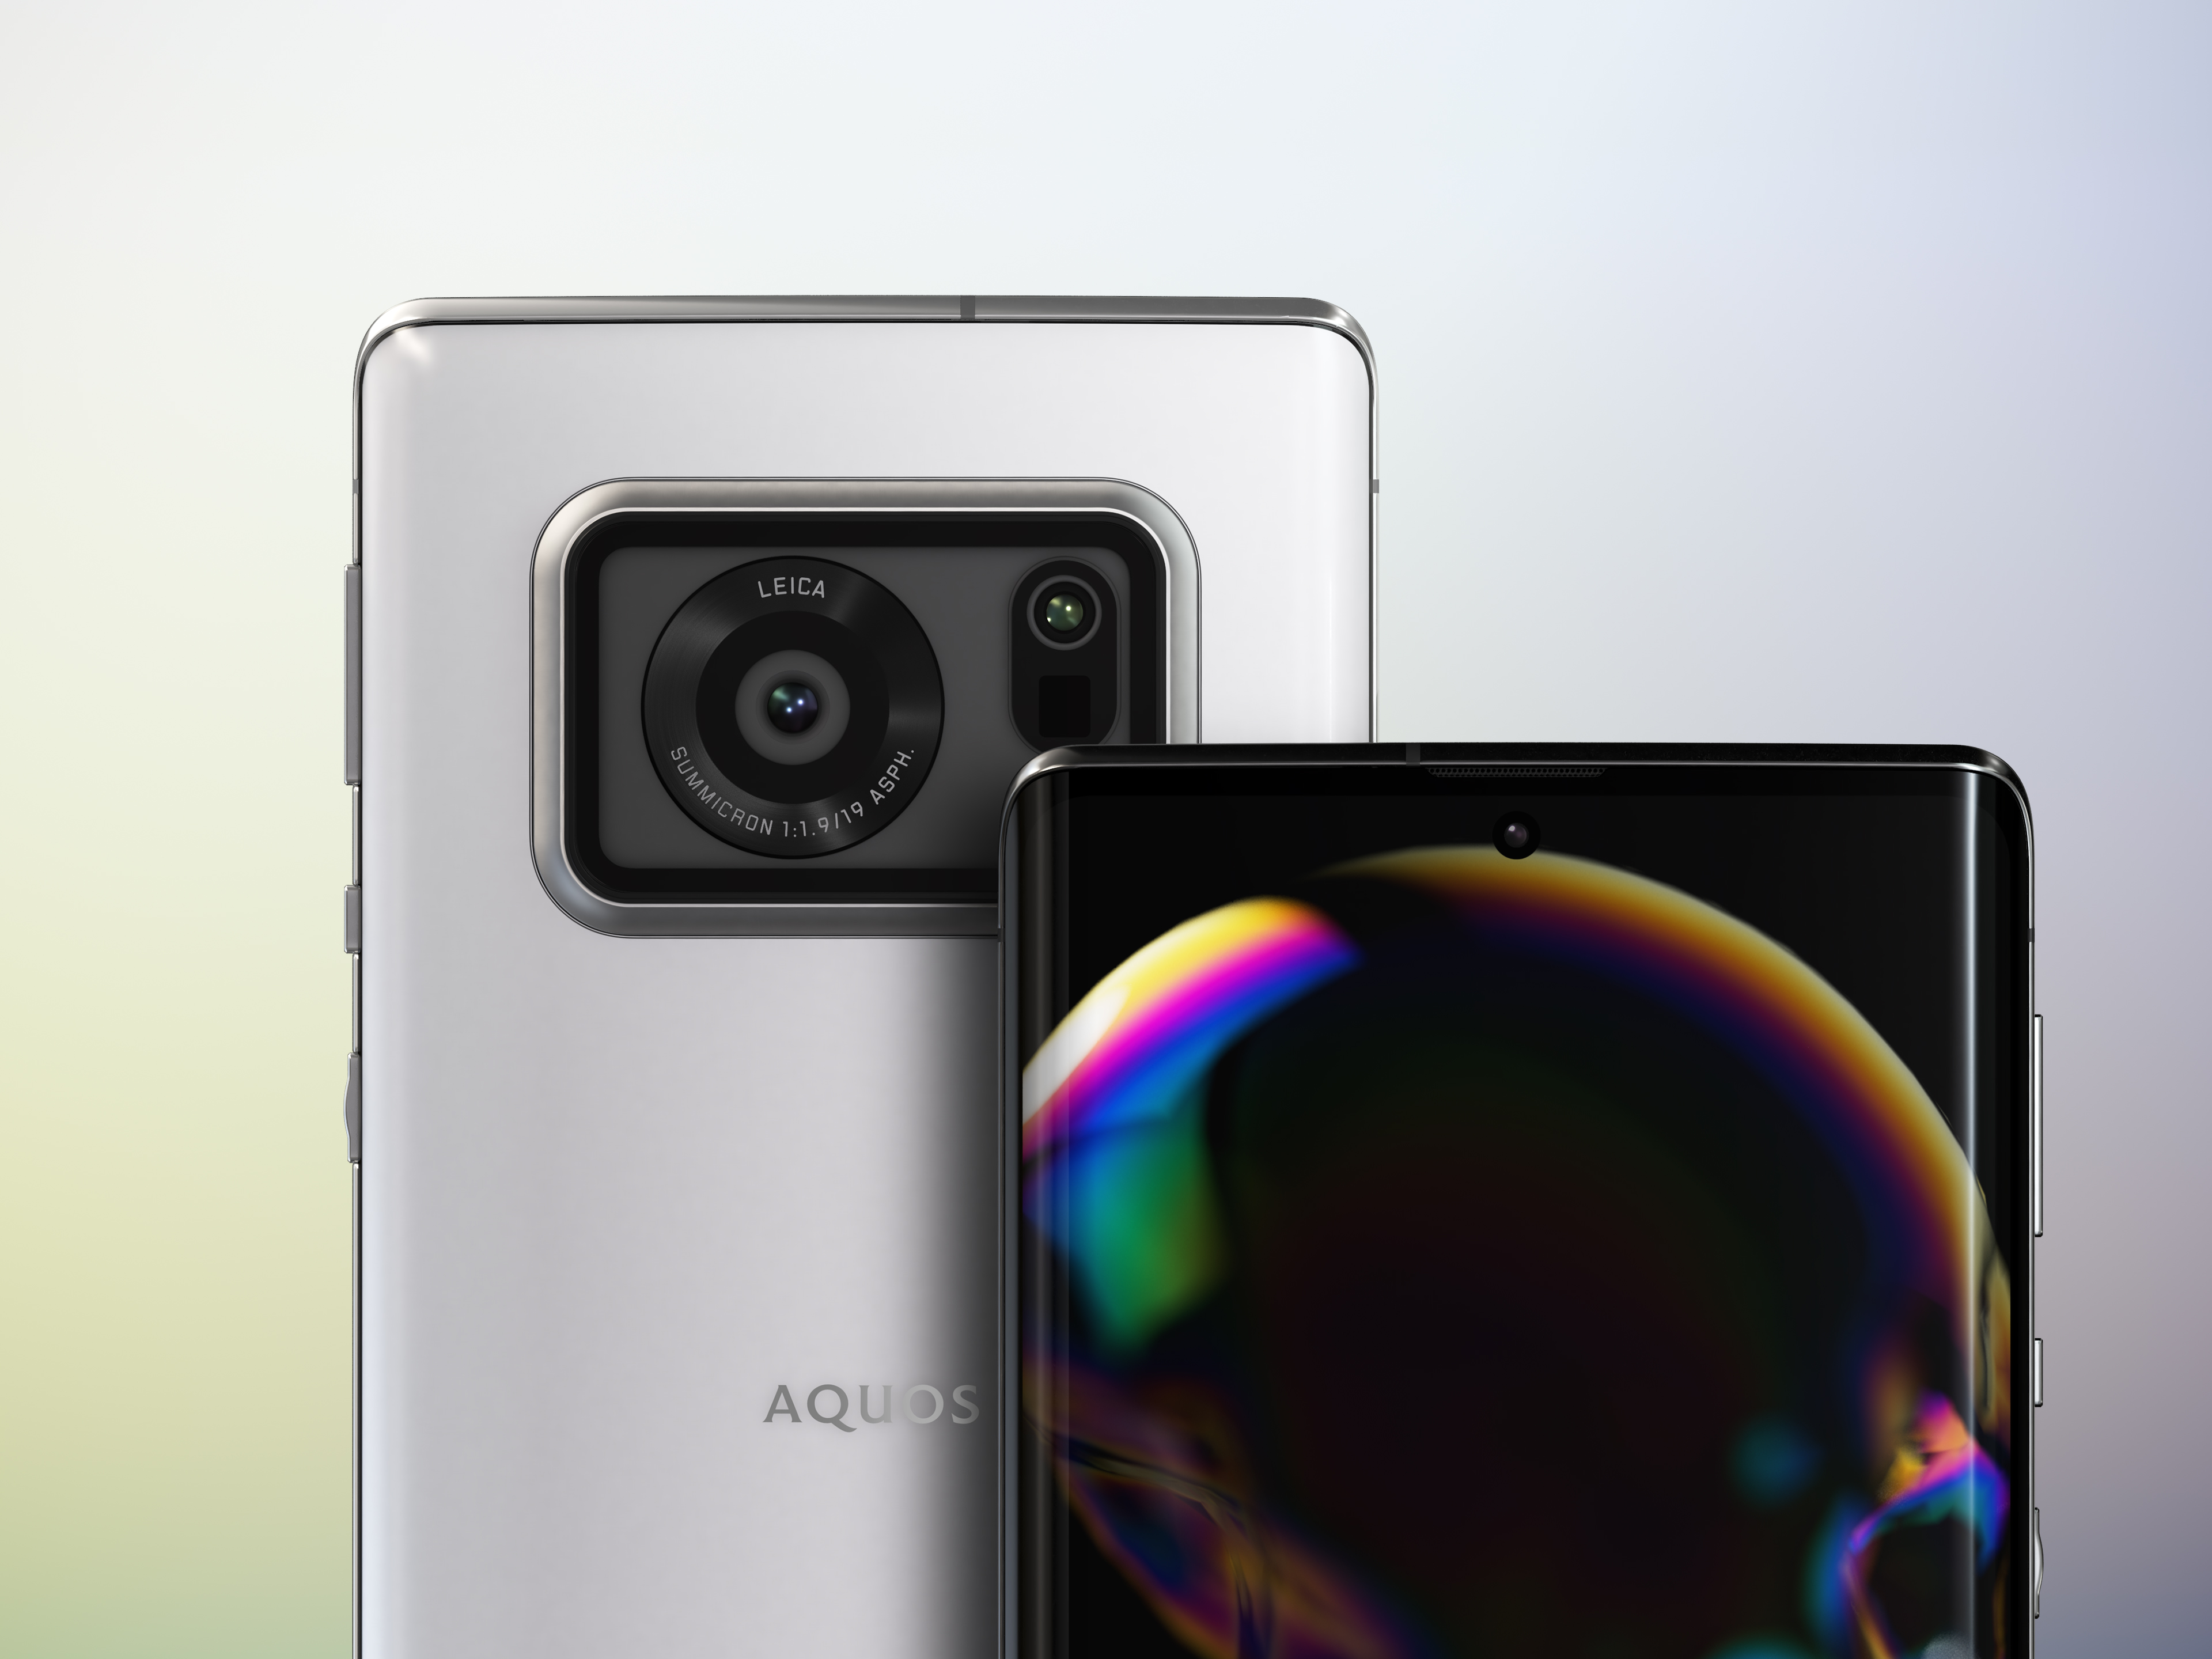 The Aquos R6 boasts a 1-inch CMOS sensor co-engineered by Sharp and Leica